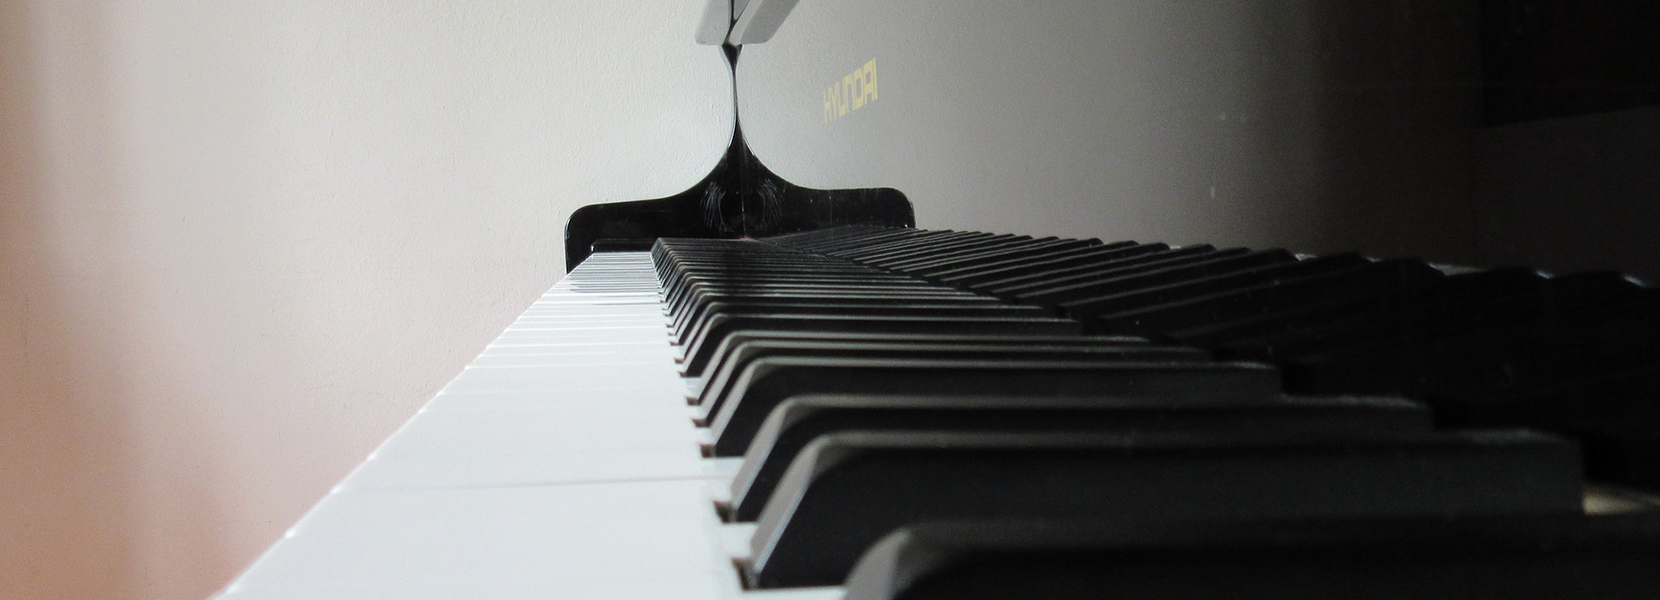 piano-724741_1920-cropped